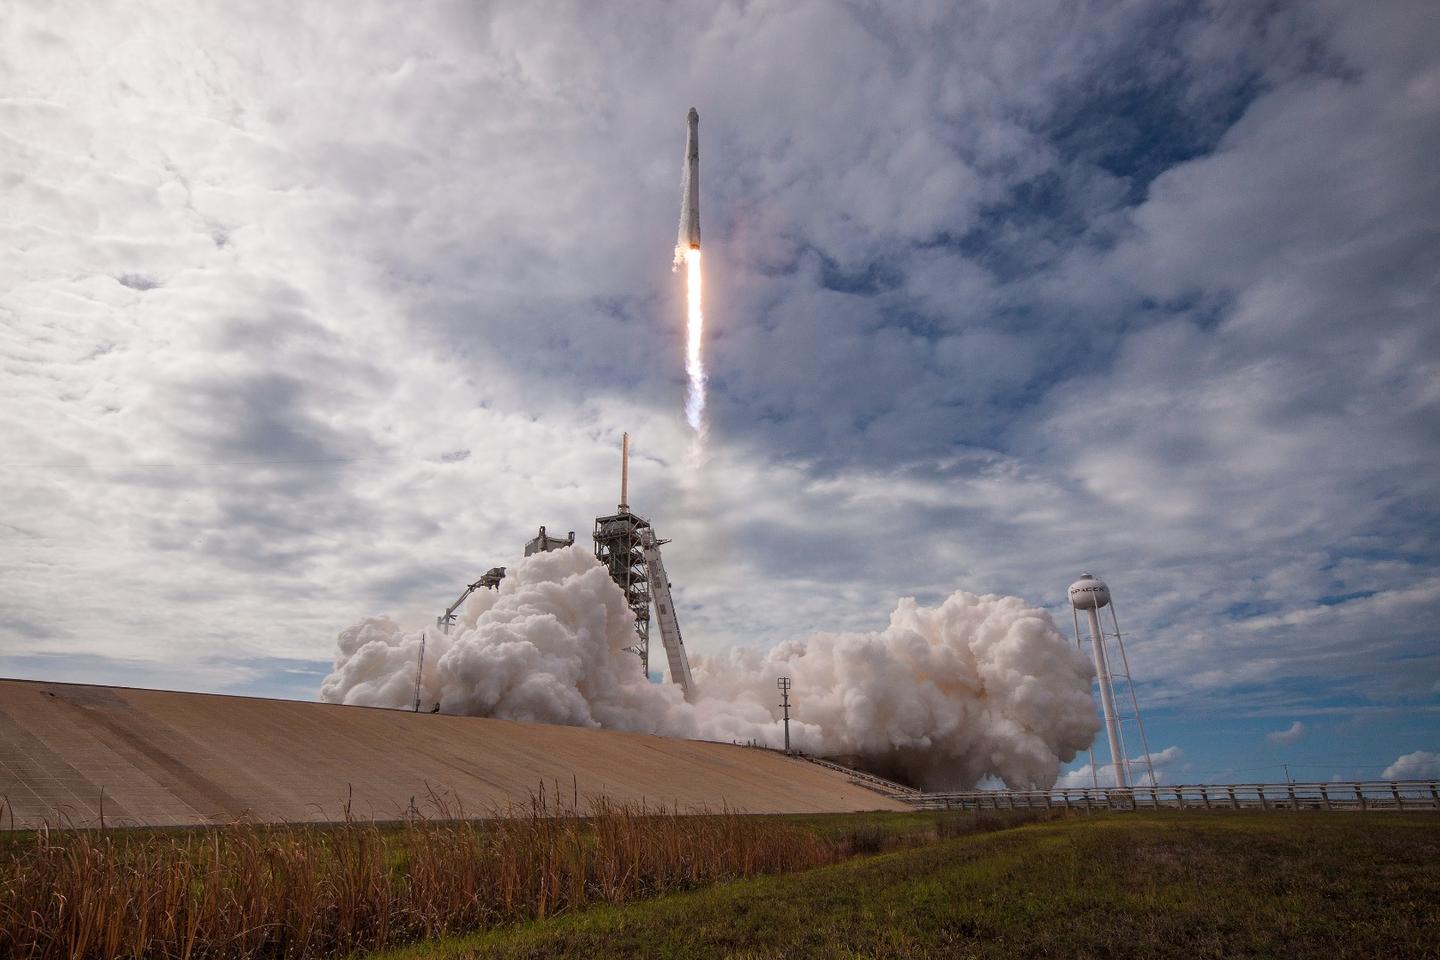 A re-used Dragon capsule lifts off from Cape Canaveral